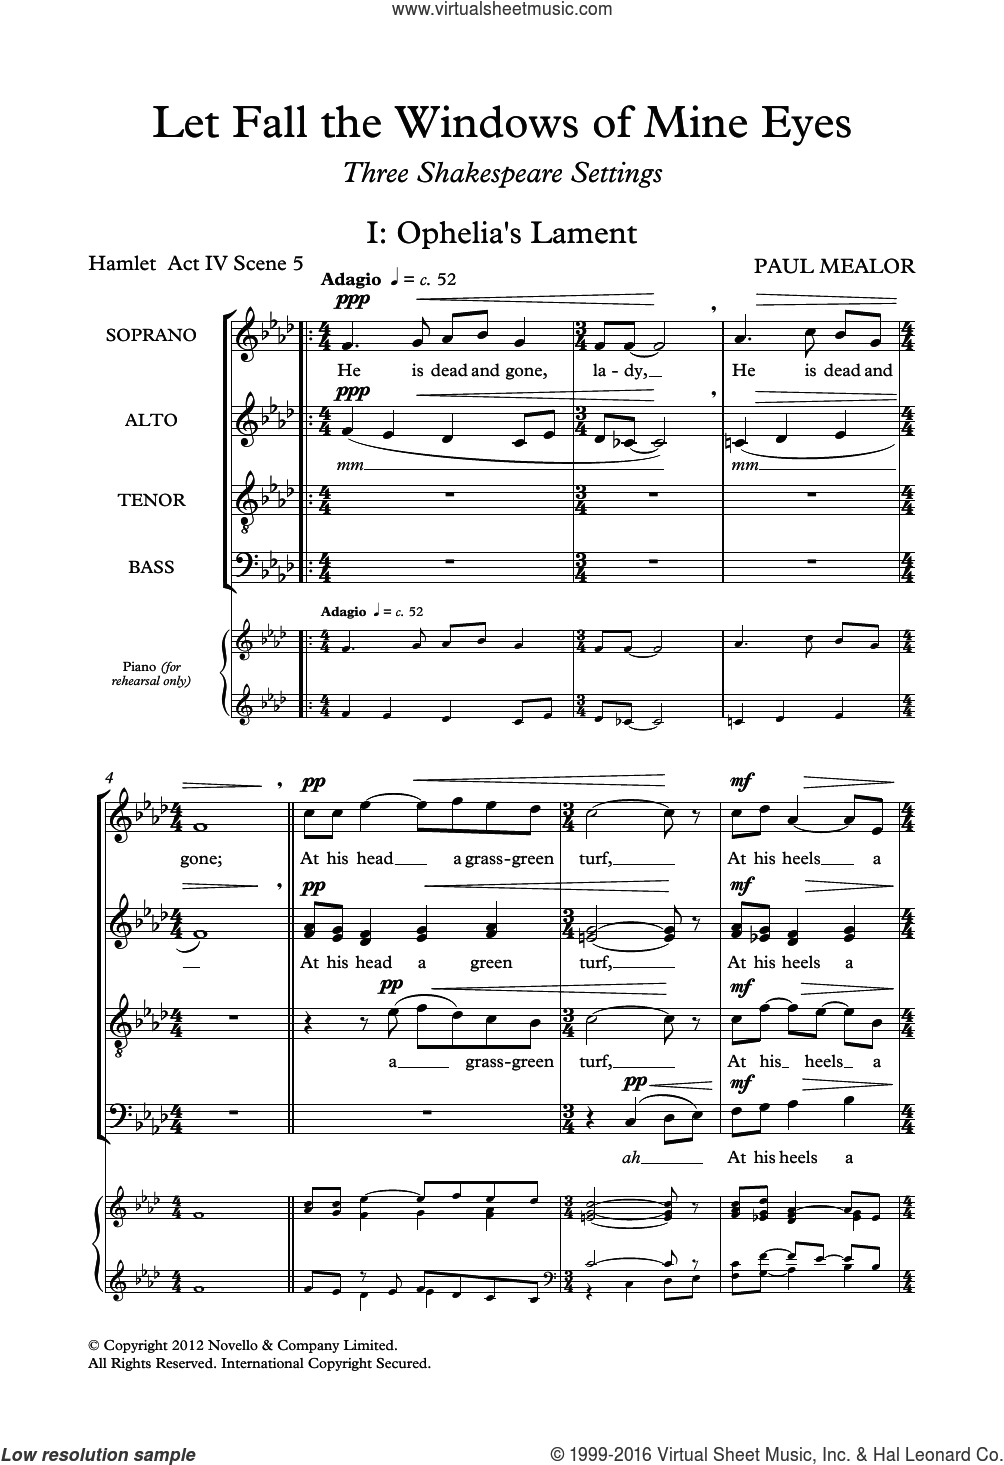 Let Fall The Windows Of Mine Eyes sheet music for voice, piano or guitar by Paul Mealor and William Shakespeare. Score Image Preview.